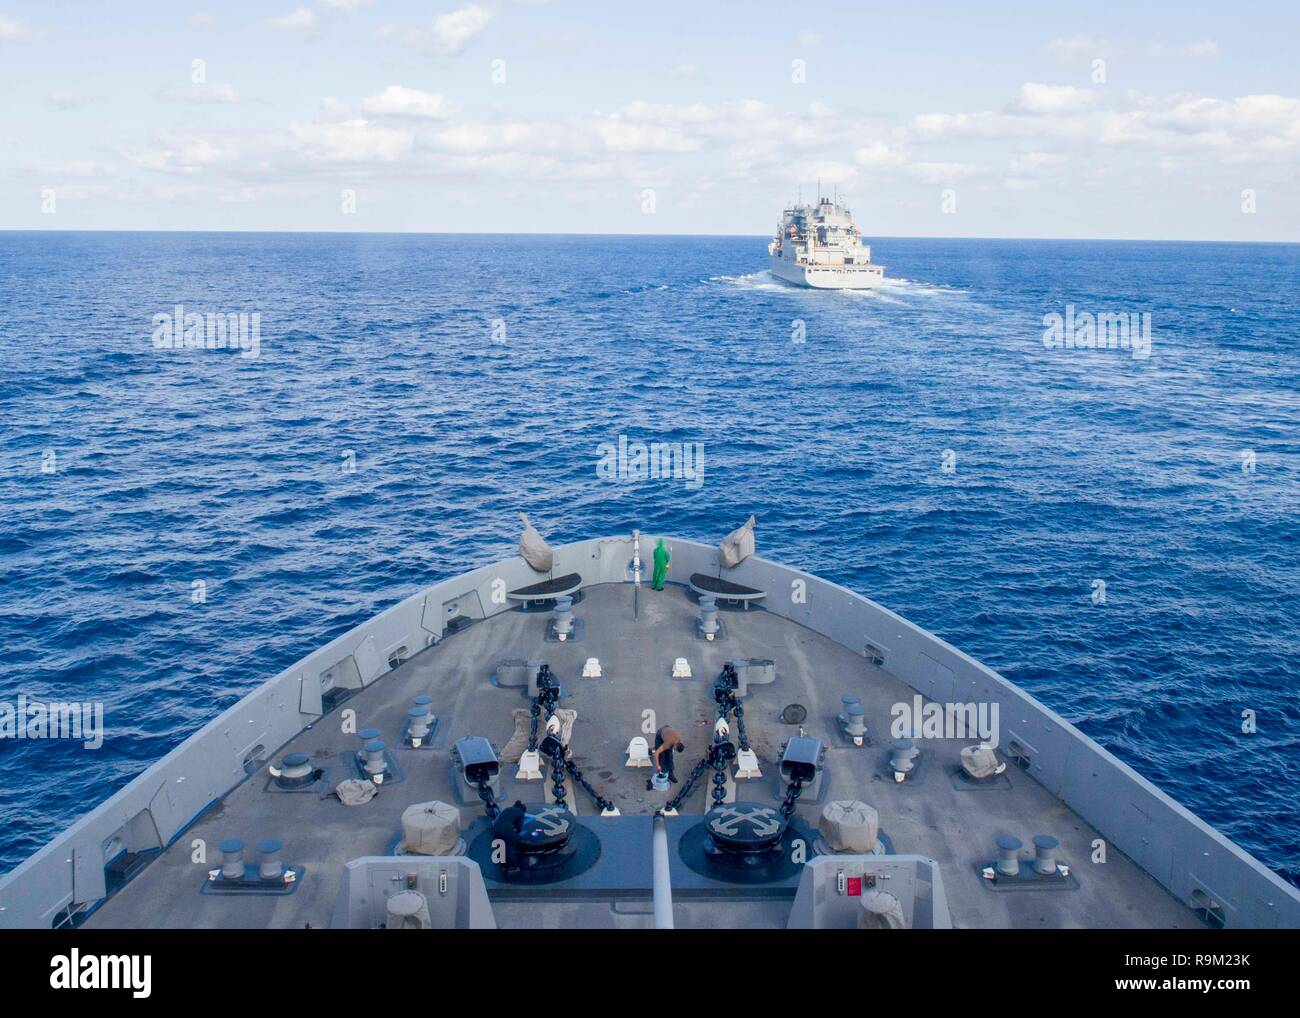 181114-N-PH222-1192 MEDITERRANEAN SEA (Nov. 14, 2018) The San Antonio-class amphibious transport dock ship USS Anchorage (LPD 23) transits the Mediterranean Sea behind the dry cargo and ammunition ship USNS Medgar Evers (T-AKE-13) in preparation for a replenishment-at-sea in, Nov. 14, 2018. Anchorage and embarked 13th Marine Expeditionary Unit are deployed to the U.S. 6th Fleet area of operations as a crisis response force in support of regional partners as well as to promote U.S. national security interests in Europe and Africa. (U.S. Navy photo by Mass Communication Specialist 3rd Class Ryan - Stock Image